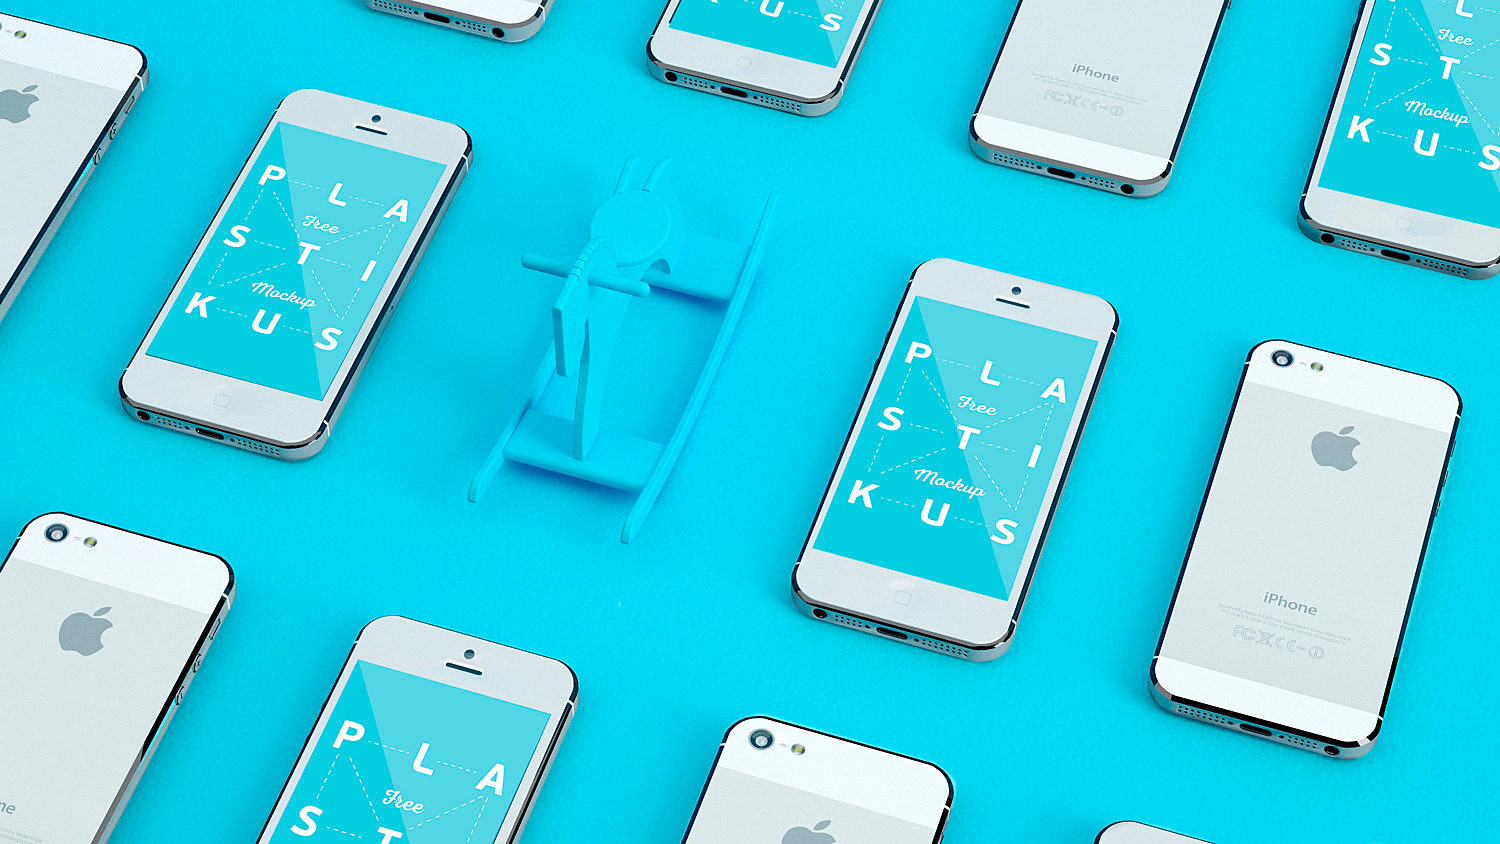 Apple's Device Mockups Free PSD